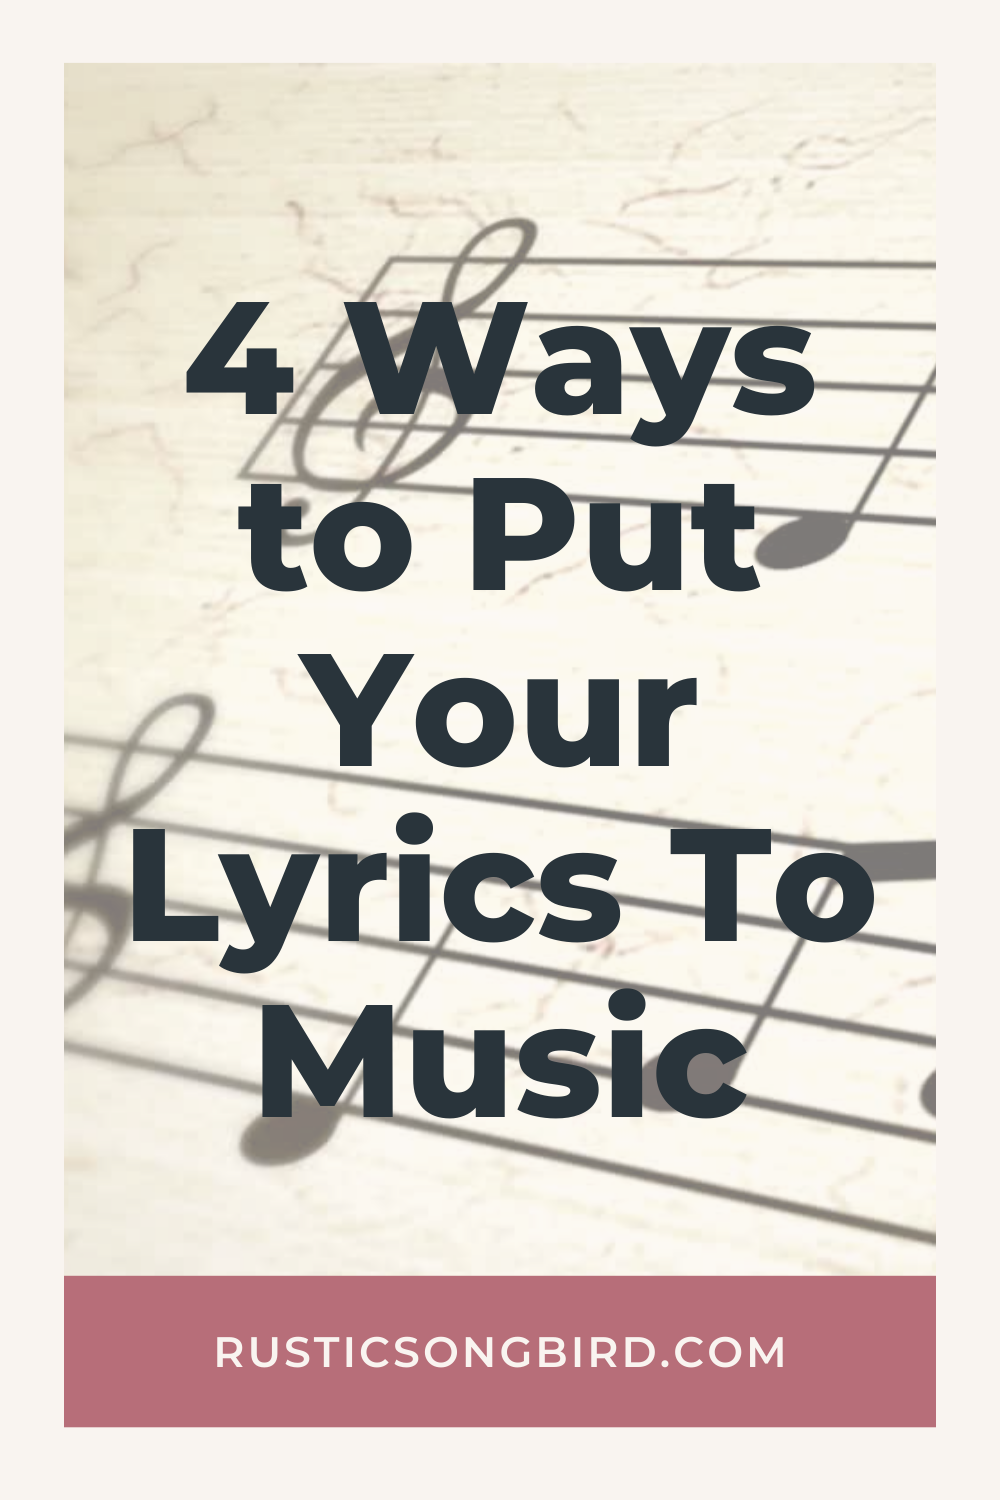 sheet music background with title of blog post text,